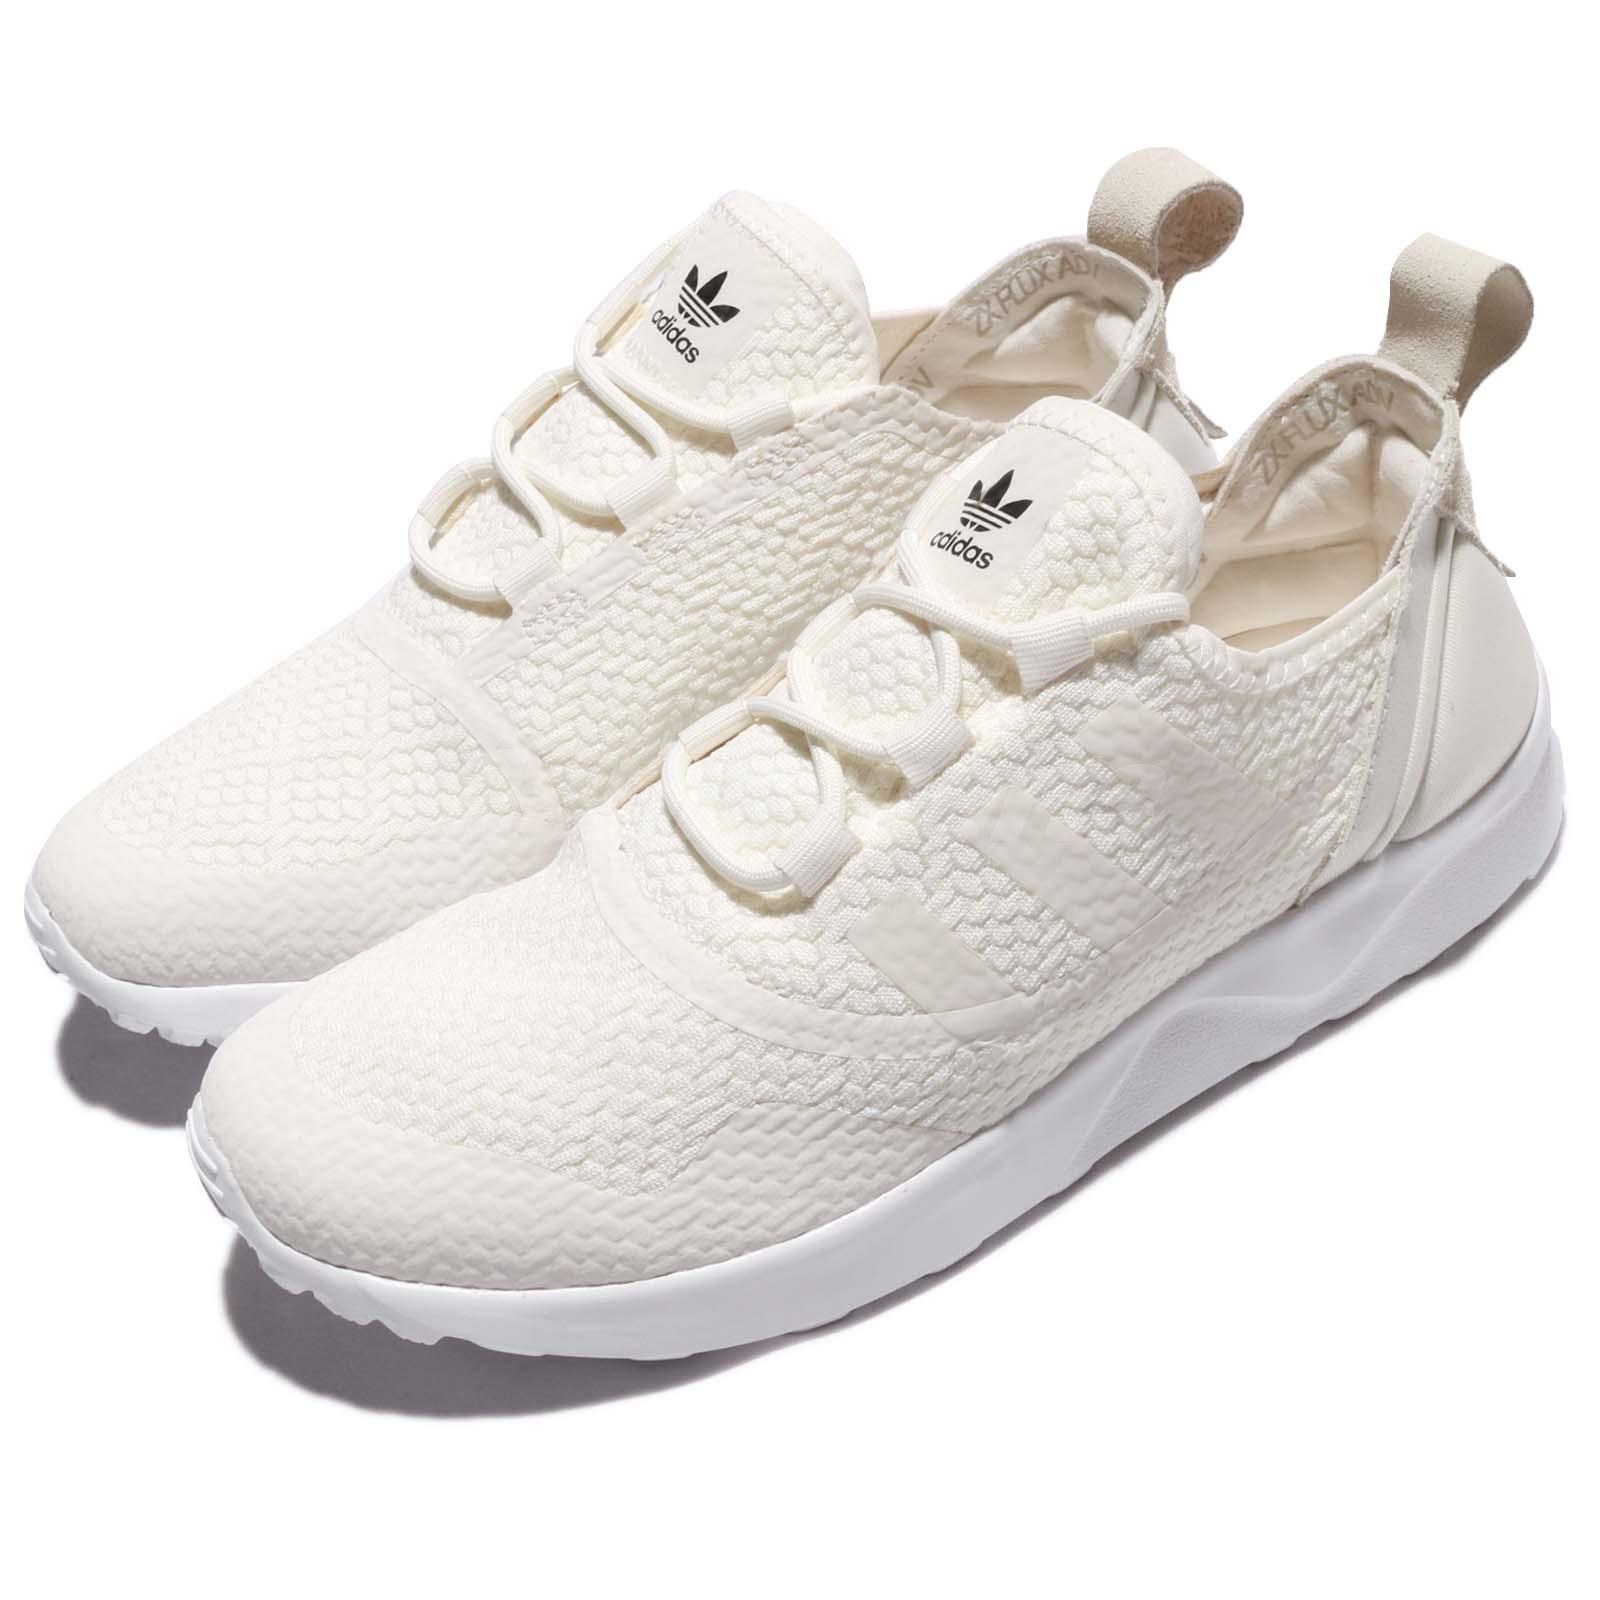 f55cb25f794a7 Details about adidas Originals ZX Flux ADV Virtue W Off White Women Running  Shoes CG4092